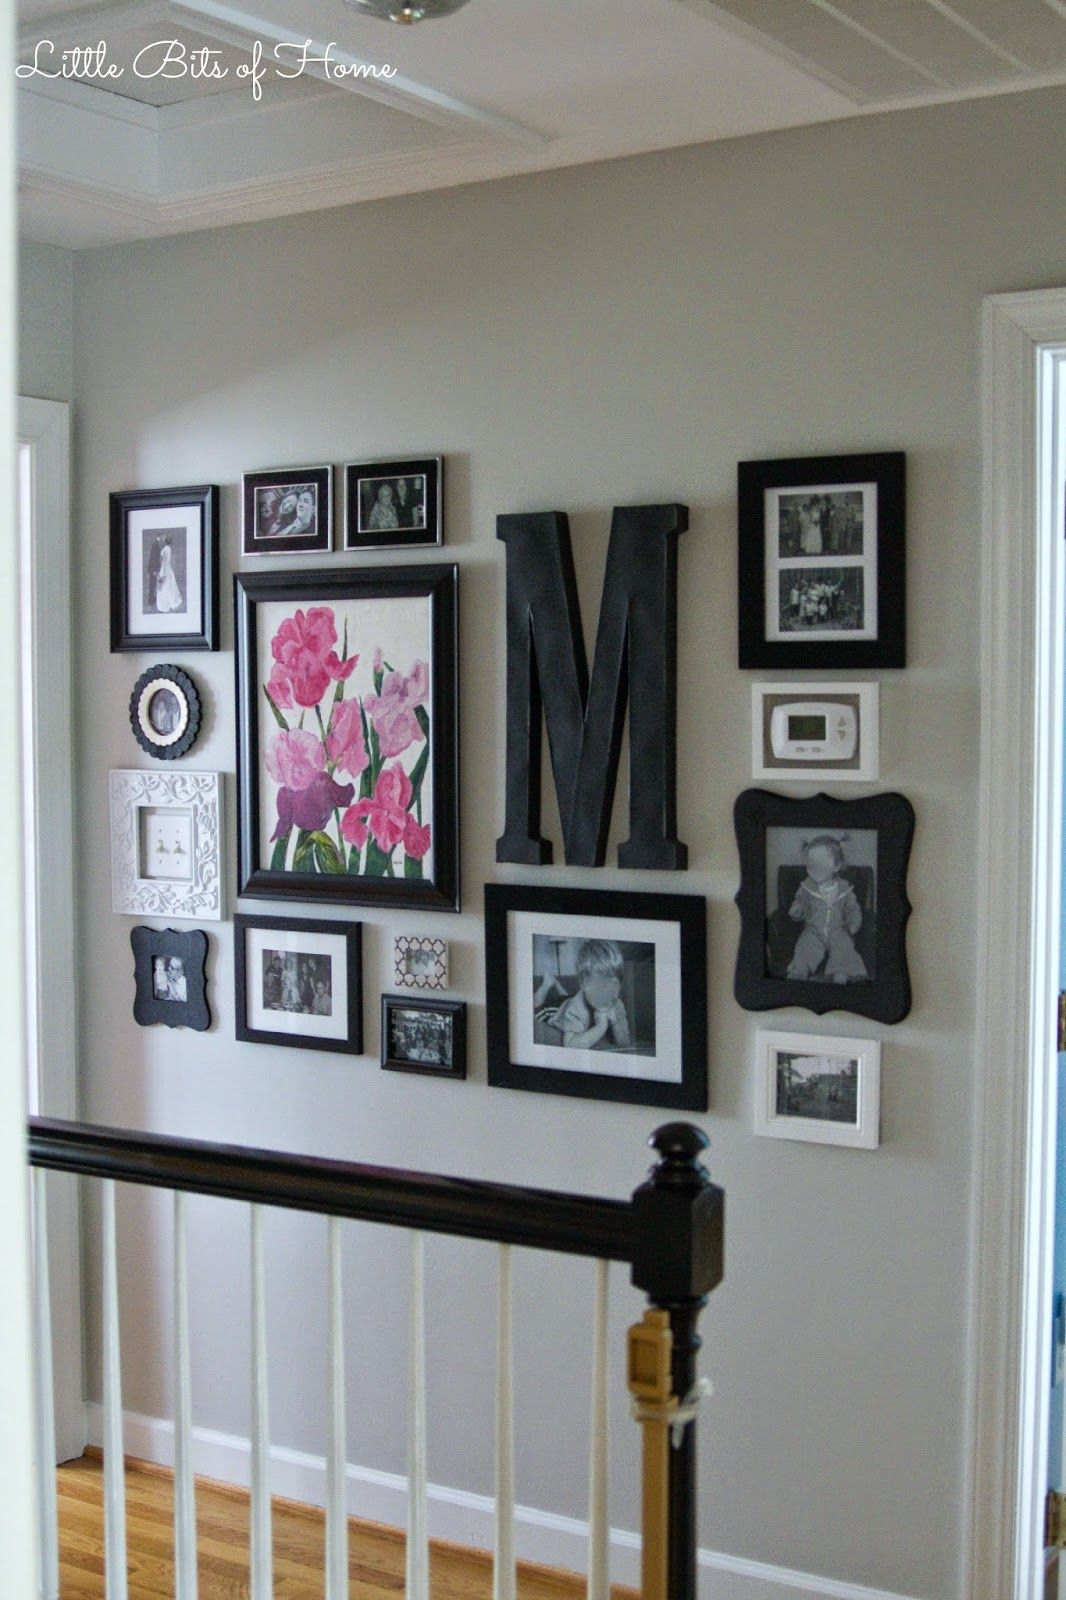 Delightful Little Bits Of Home: Hallway Gallery Wall